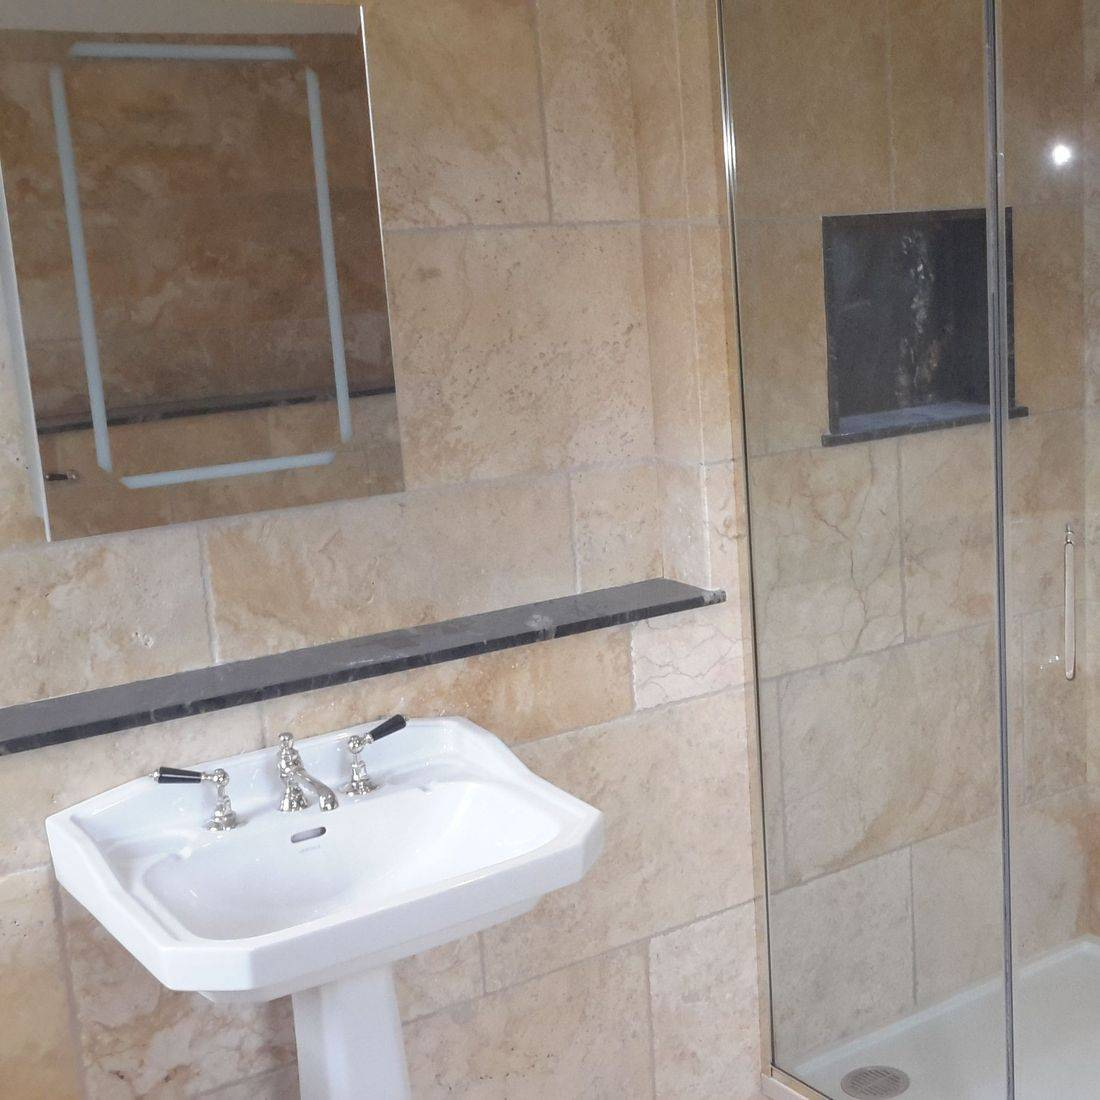 bathroom fitter,walk in shower,tiler,plumber,joiner,inverness,highlands,dingwall,scotland,stonemason,